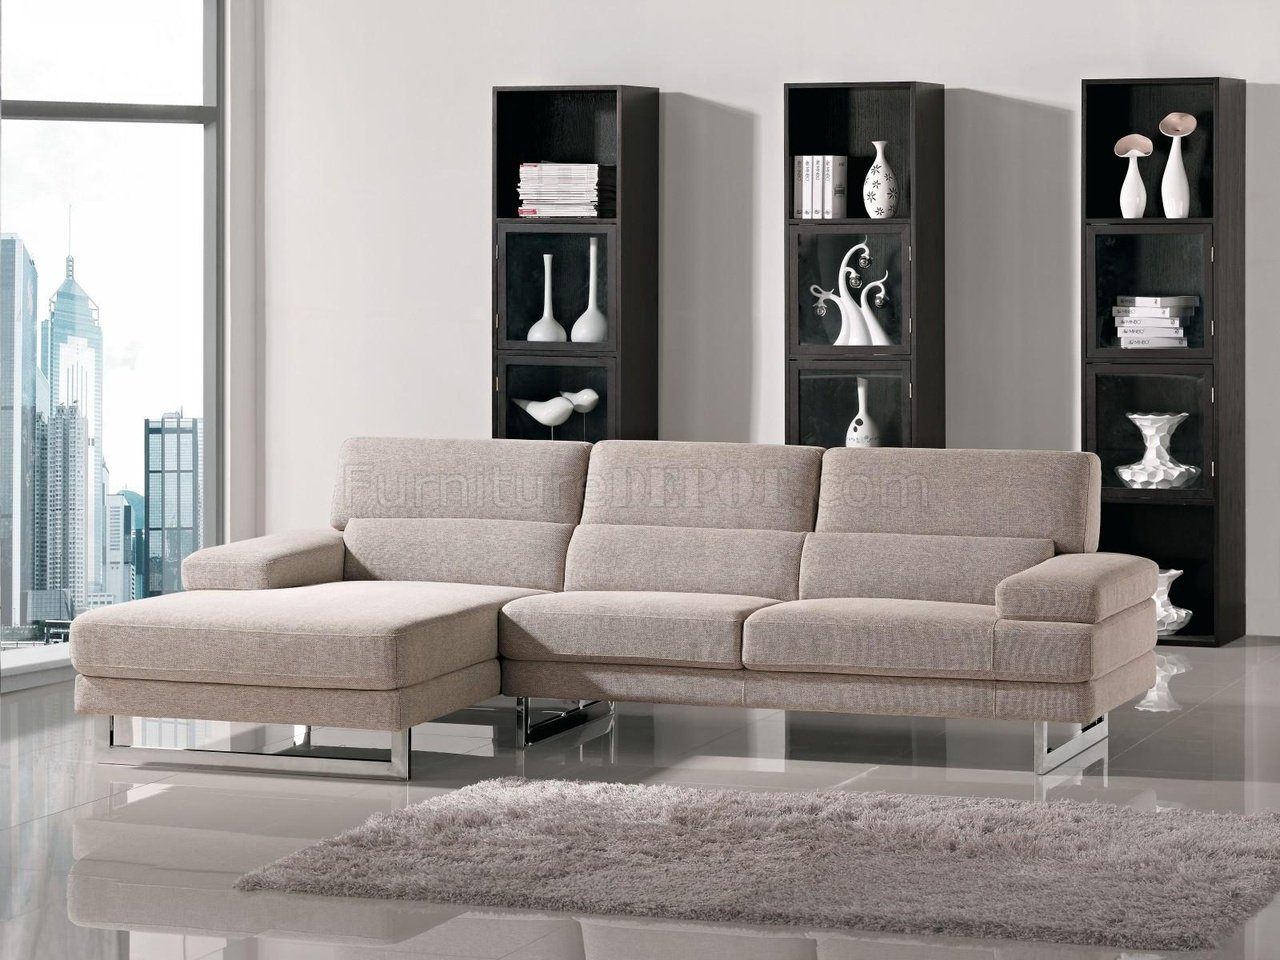 Beige Fabric L Shape Modern Sectional Sofa W/Metal Legs Inside Mireille Modern And Contemporary Fabric Upholstered Sectional Sofas (View 7 of 15)